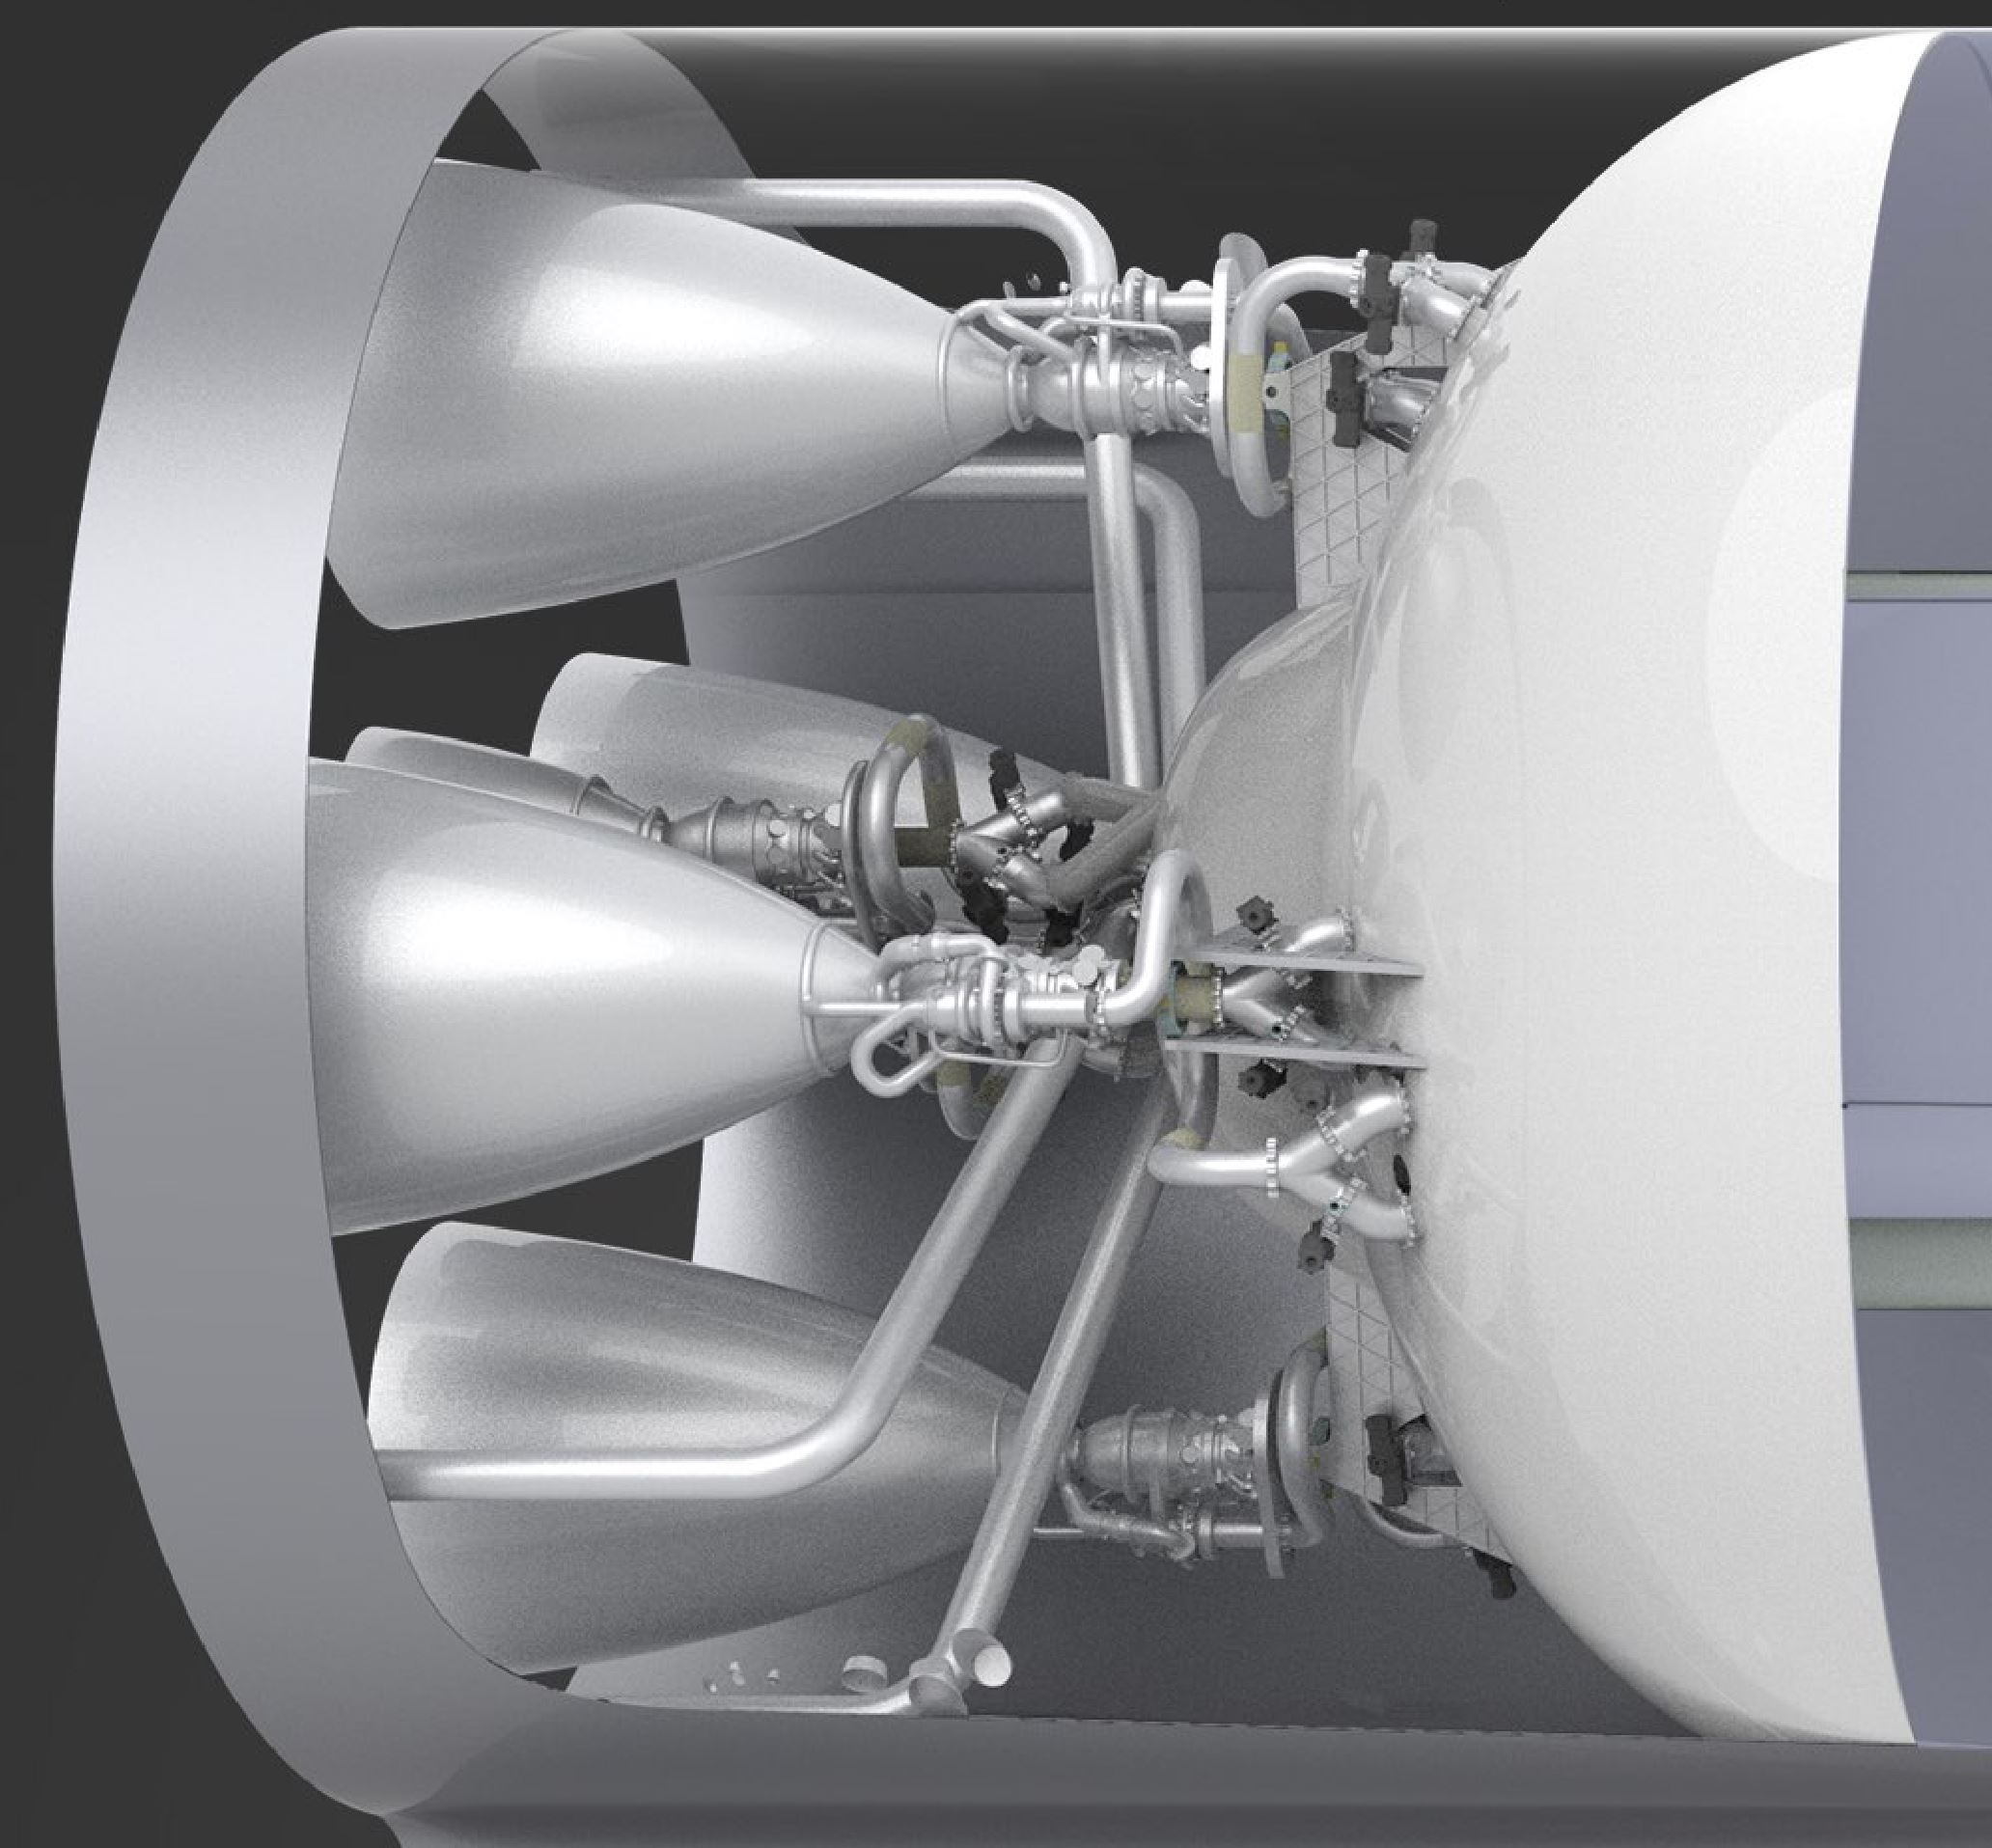 BFR 2017 spaceship engine section